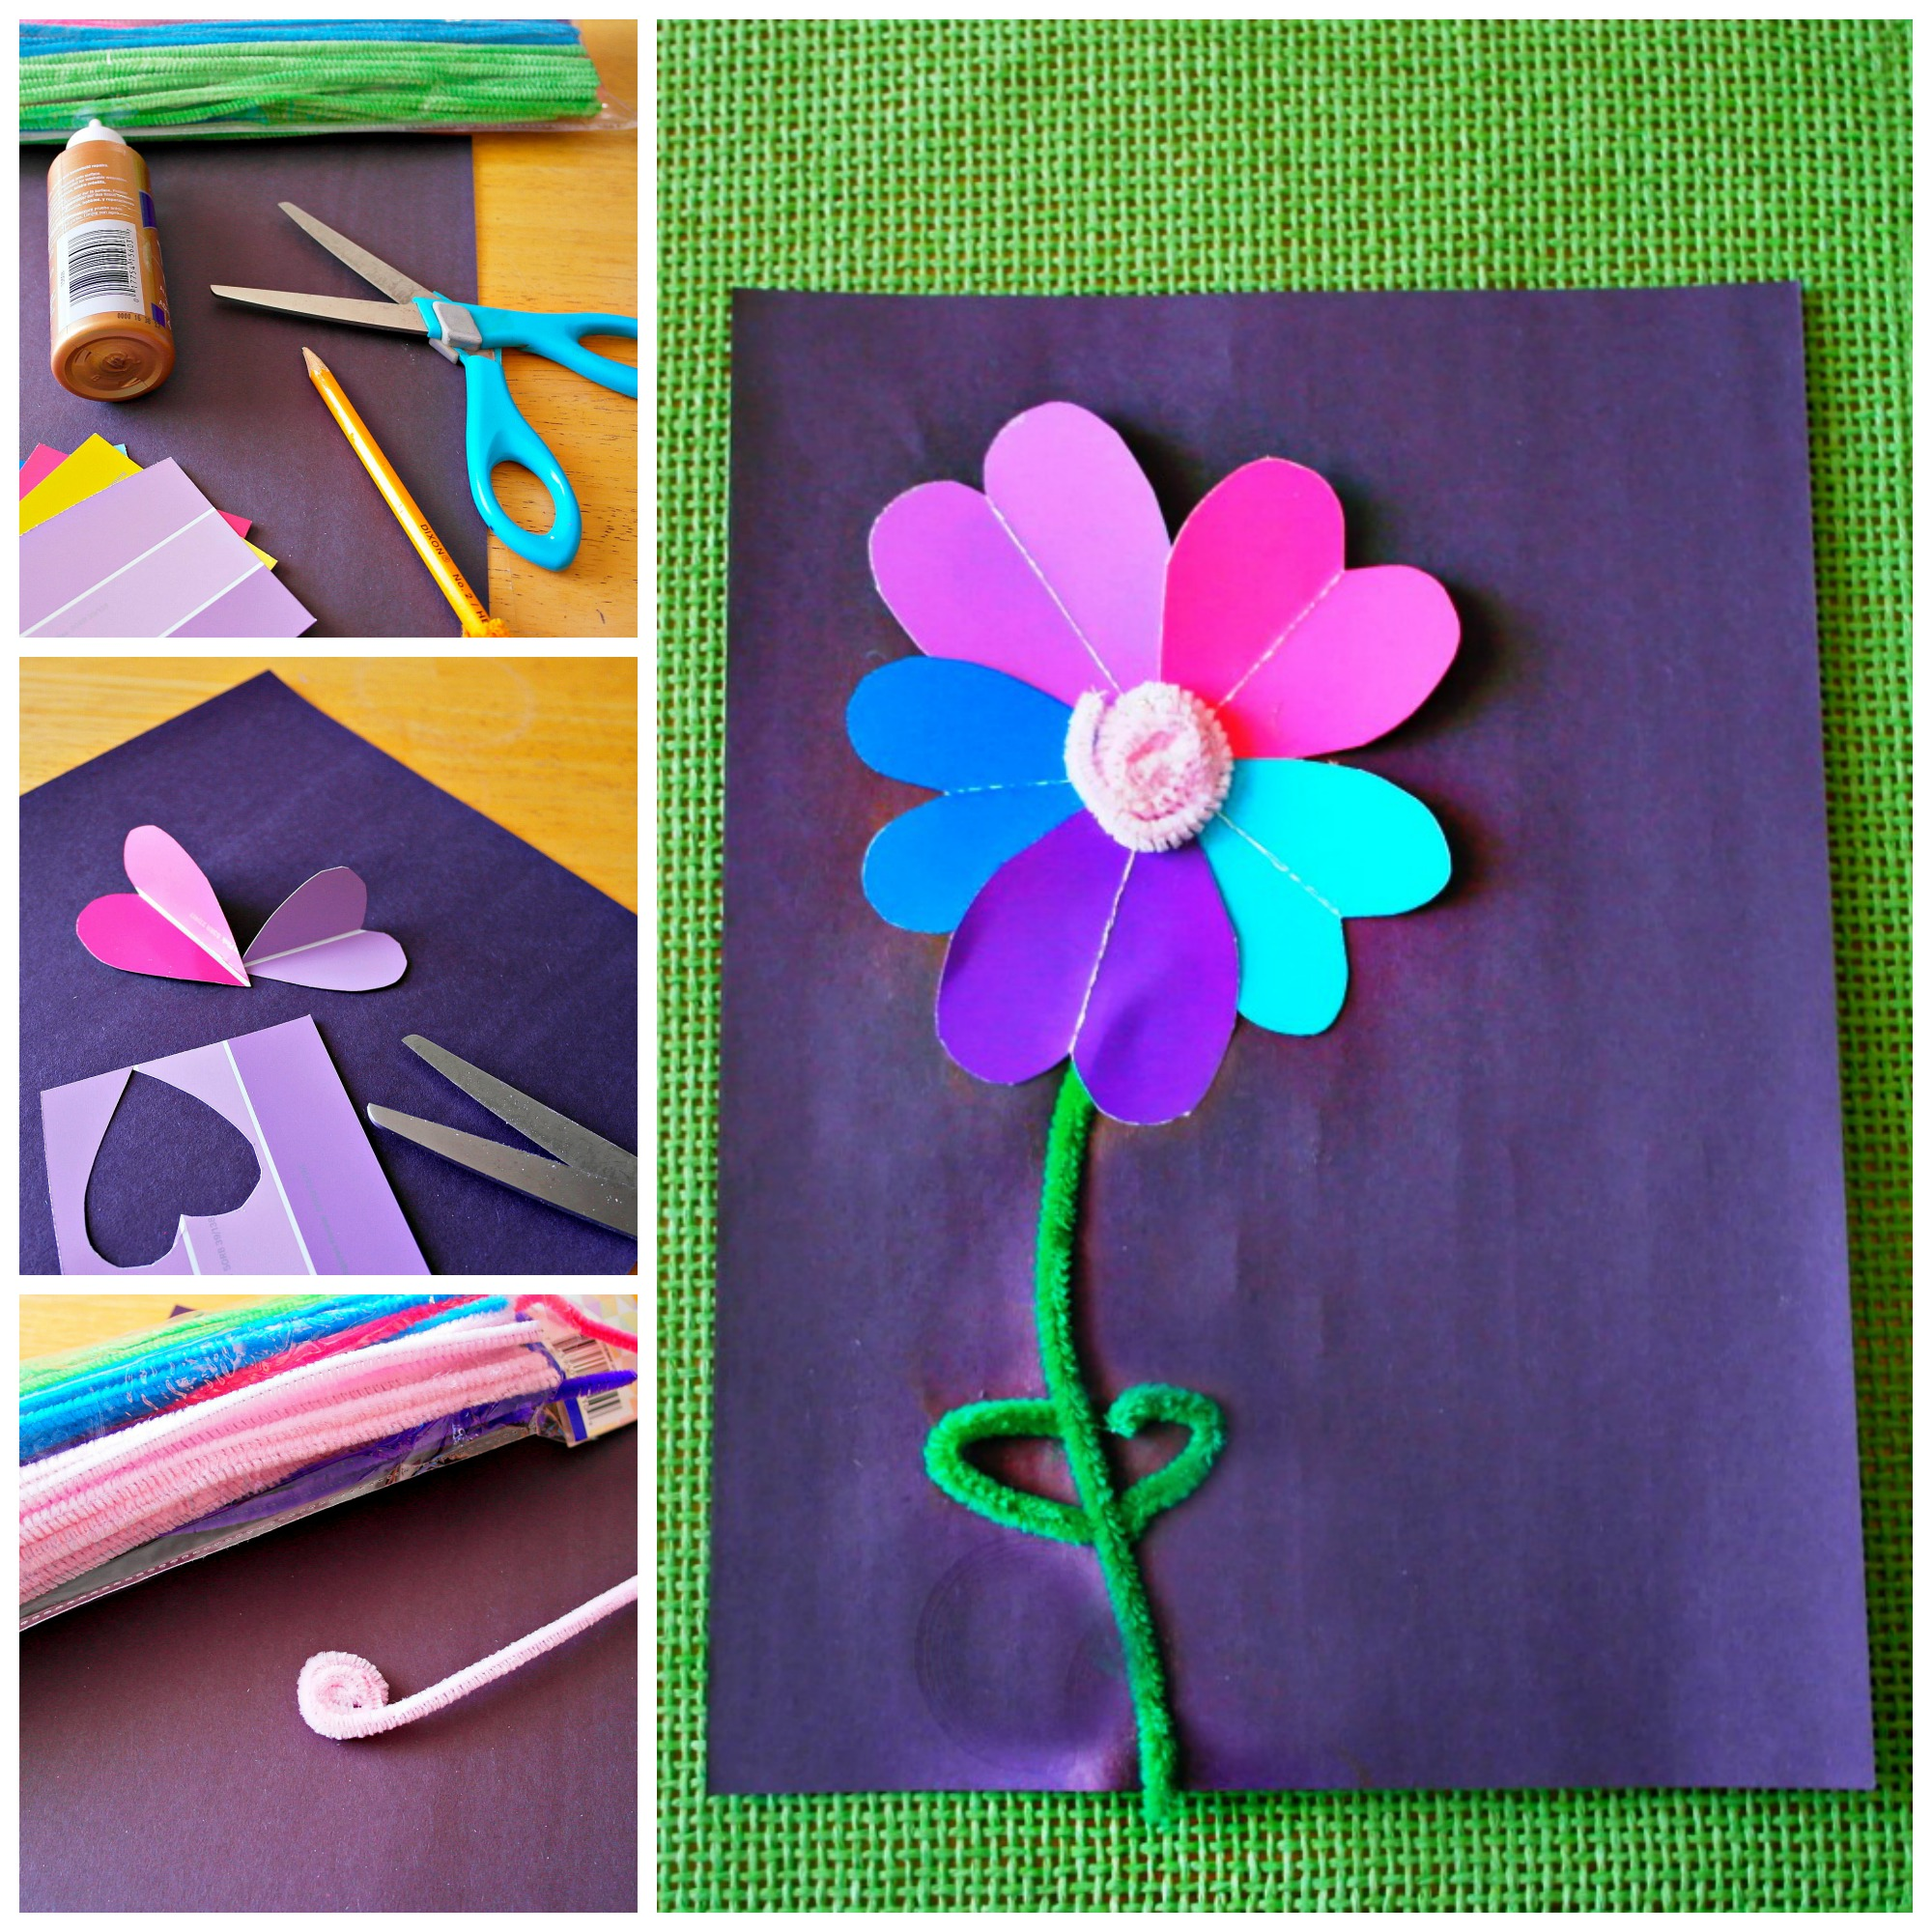 paint sample flower craft